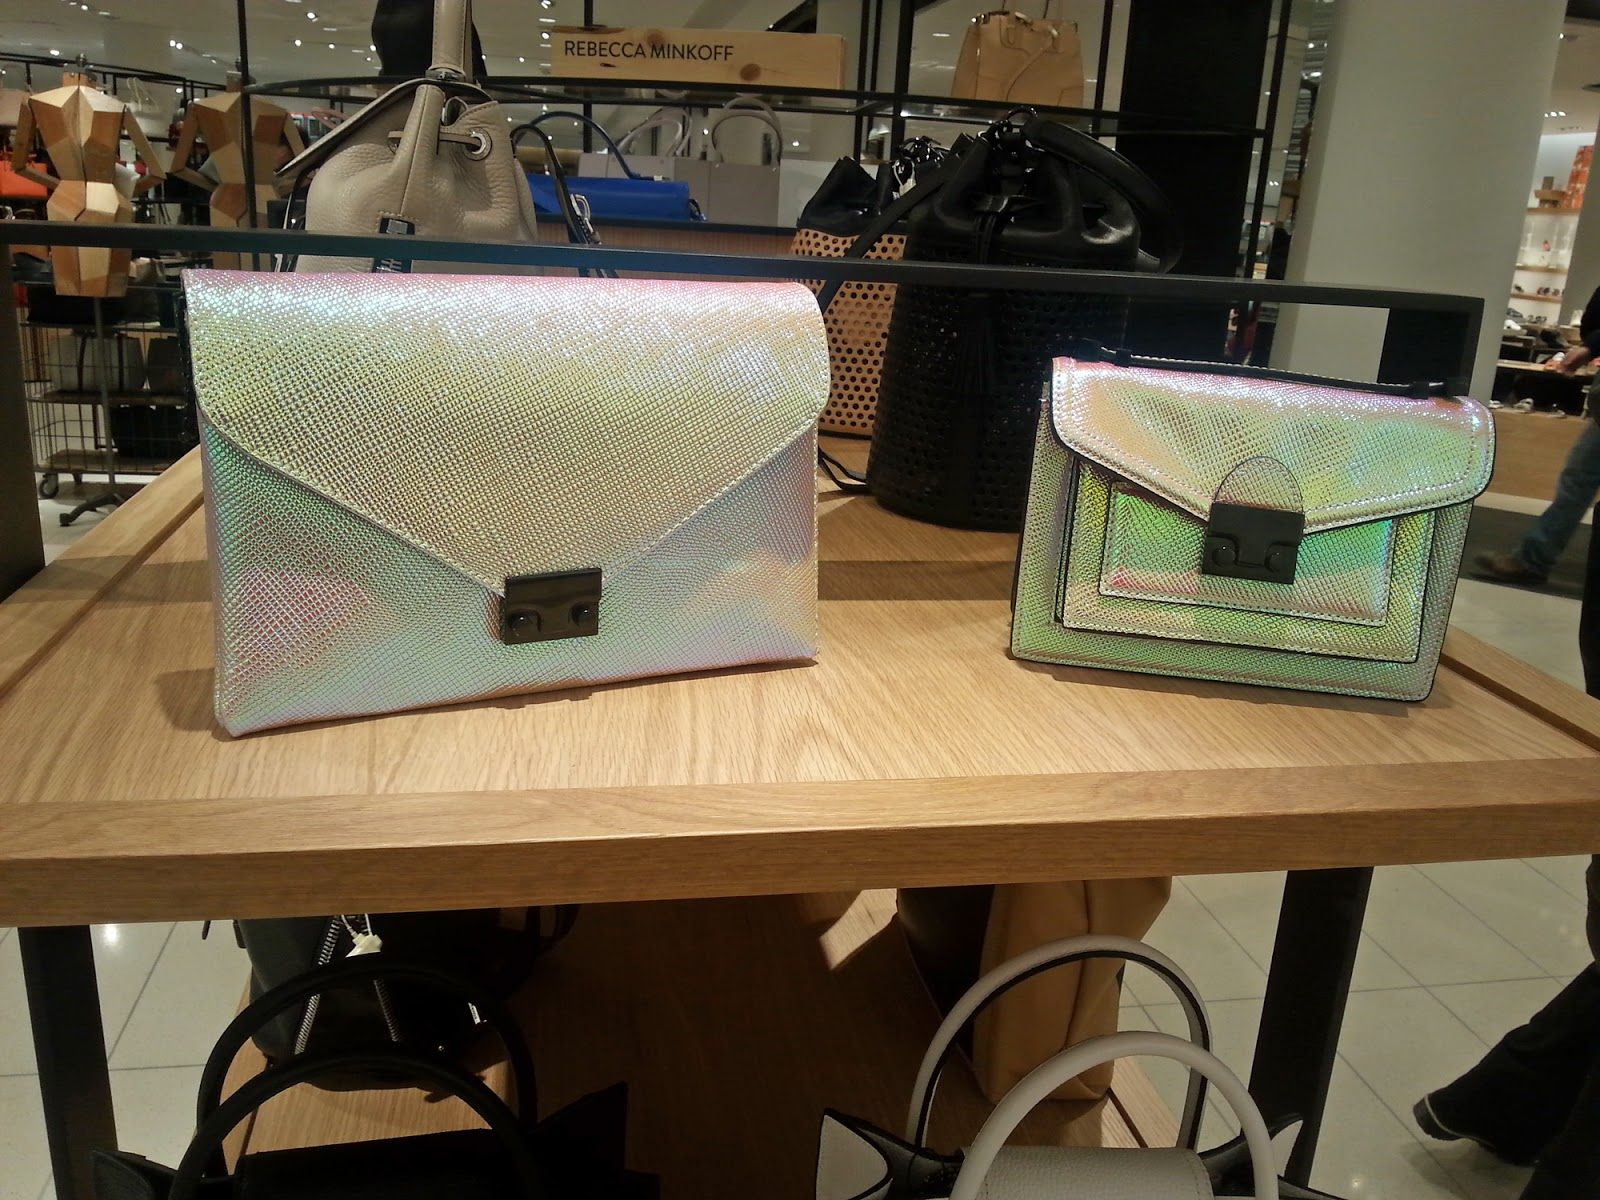 Loeffler Randall Mini Rider bag and Lock Clutch - both in a beautiful iridescent finish